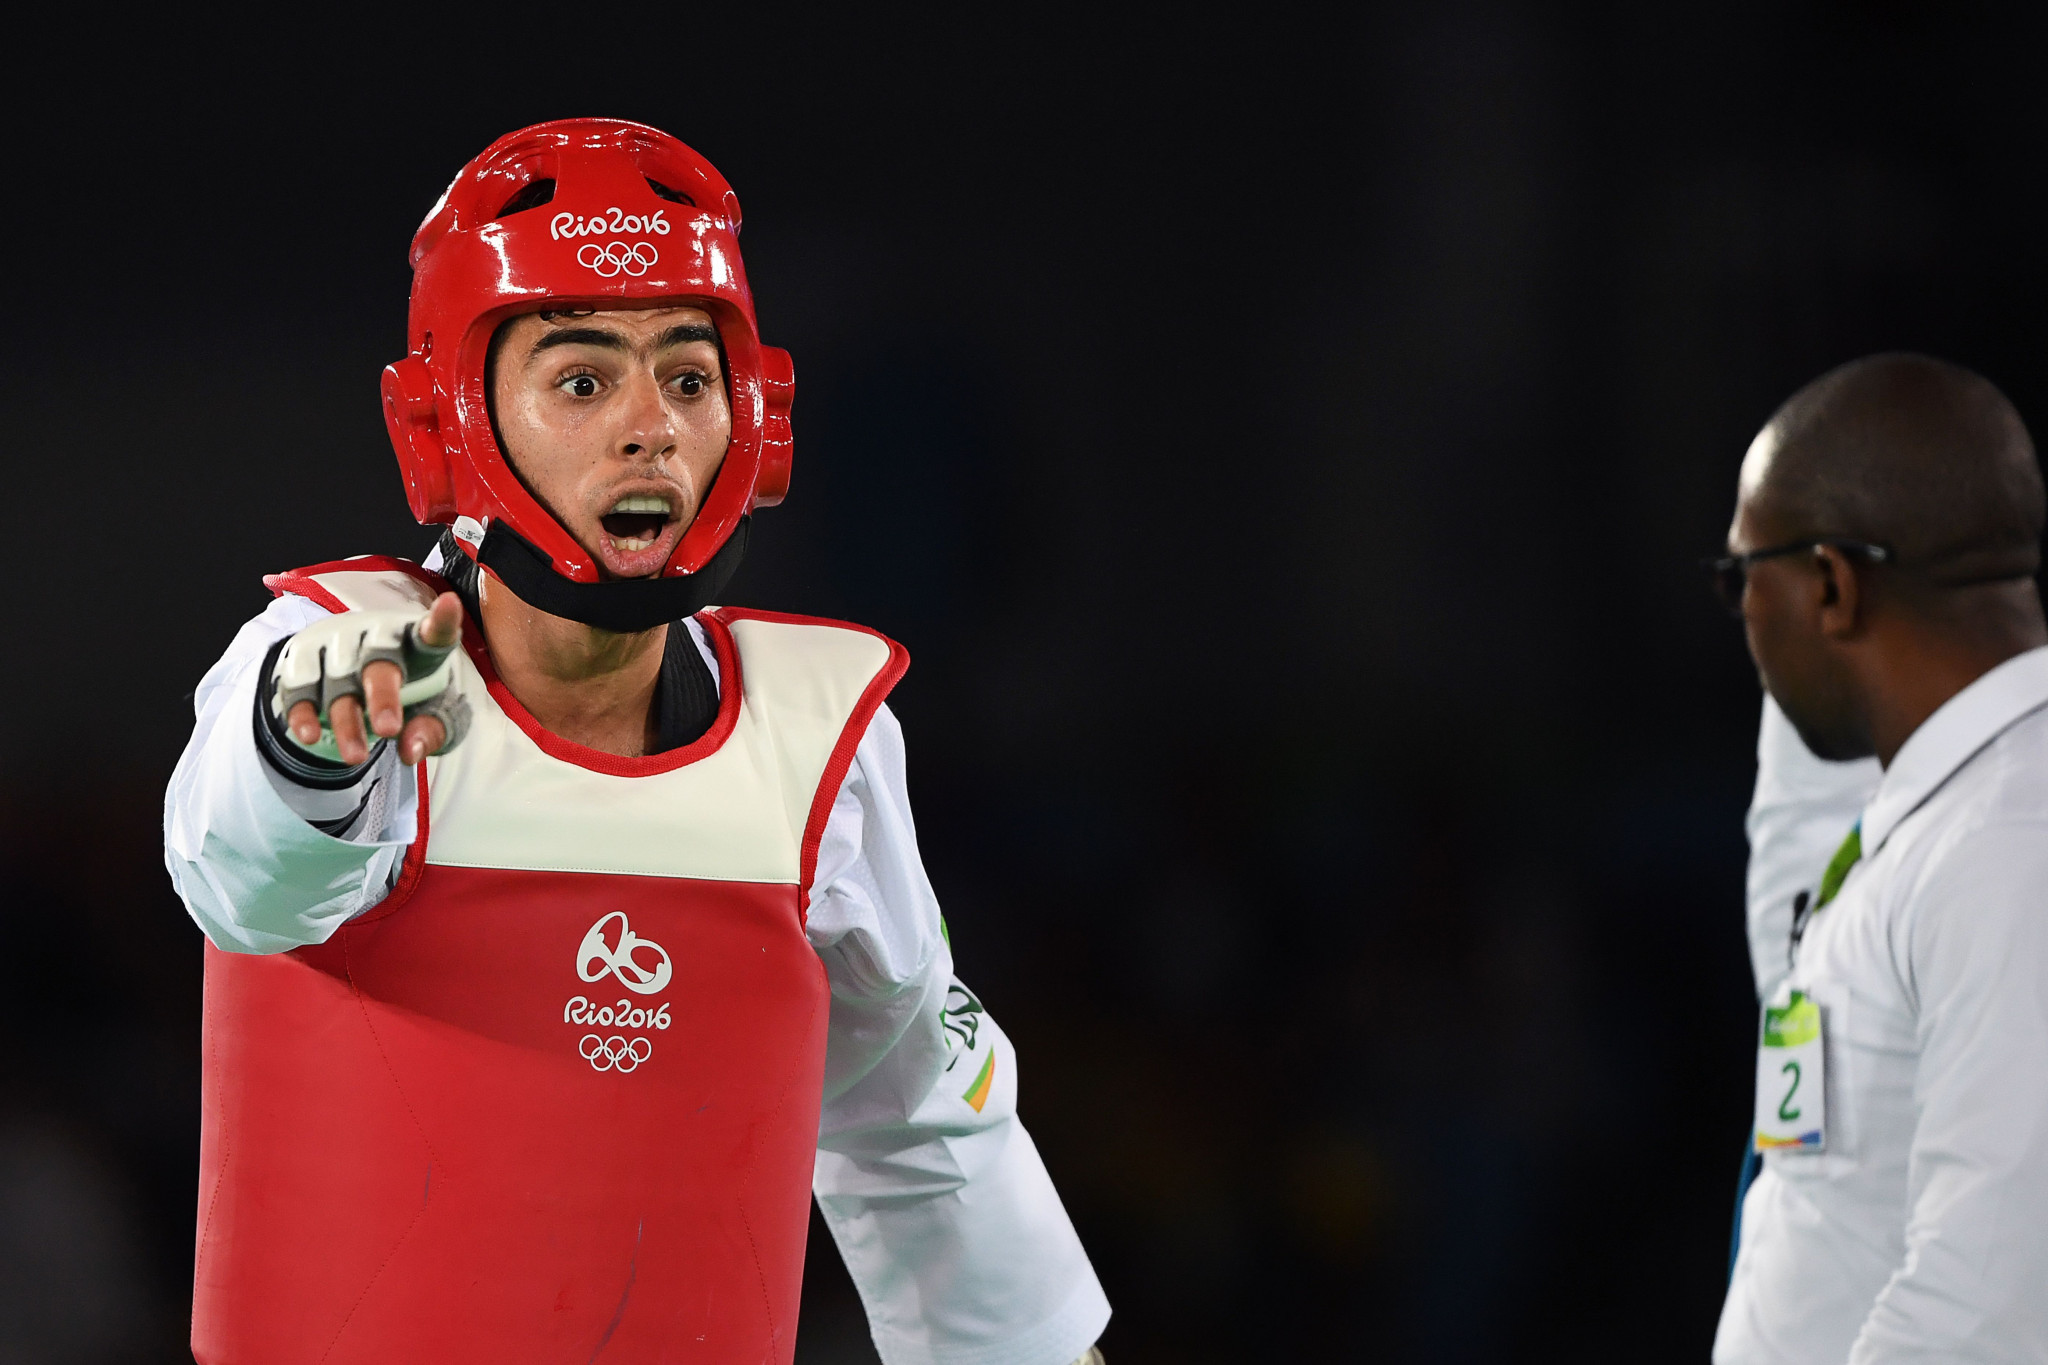 Jaouad Achab is one of Belgian taekwondo's star names ©Getty Images